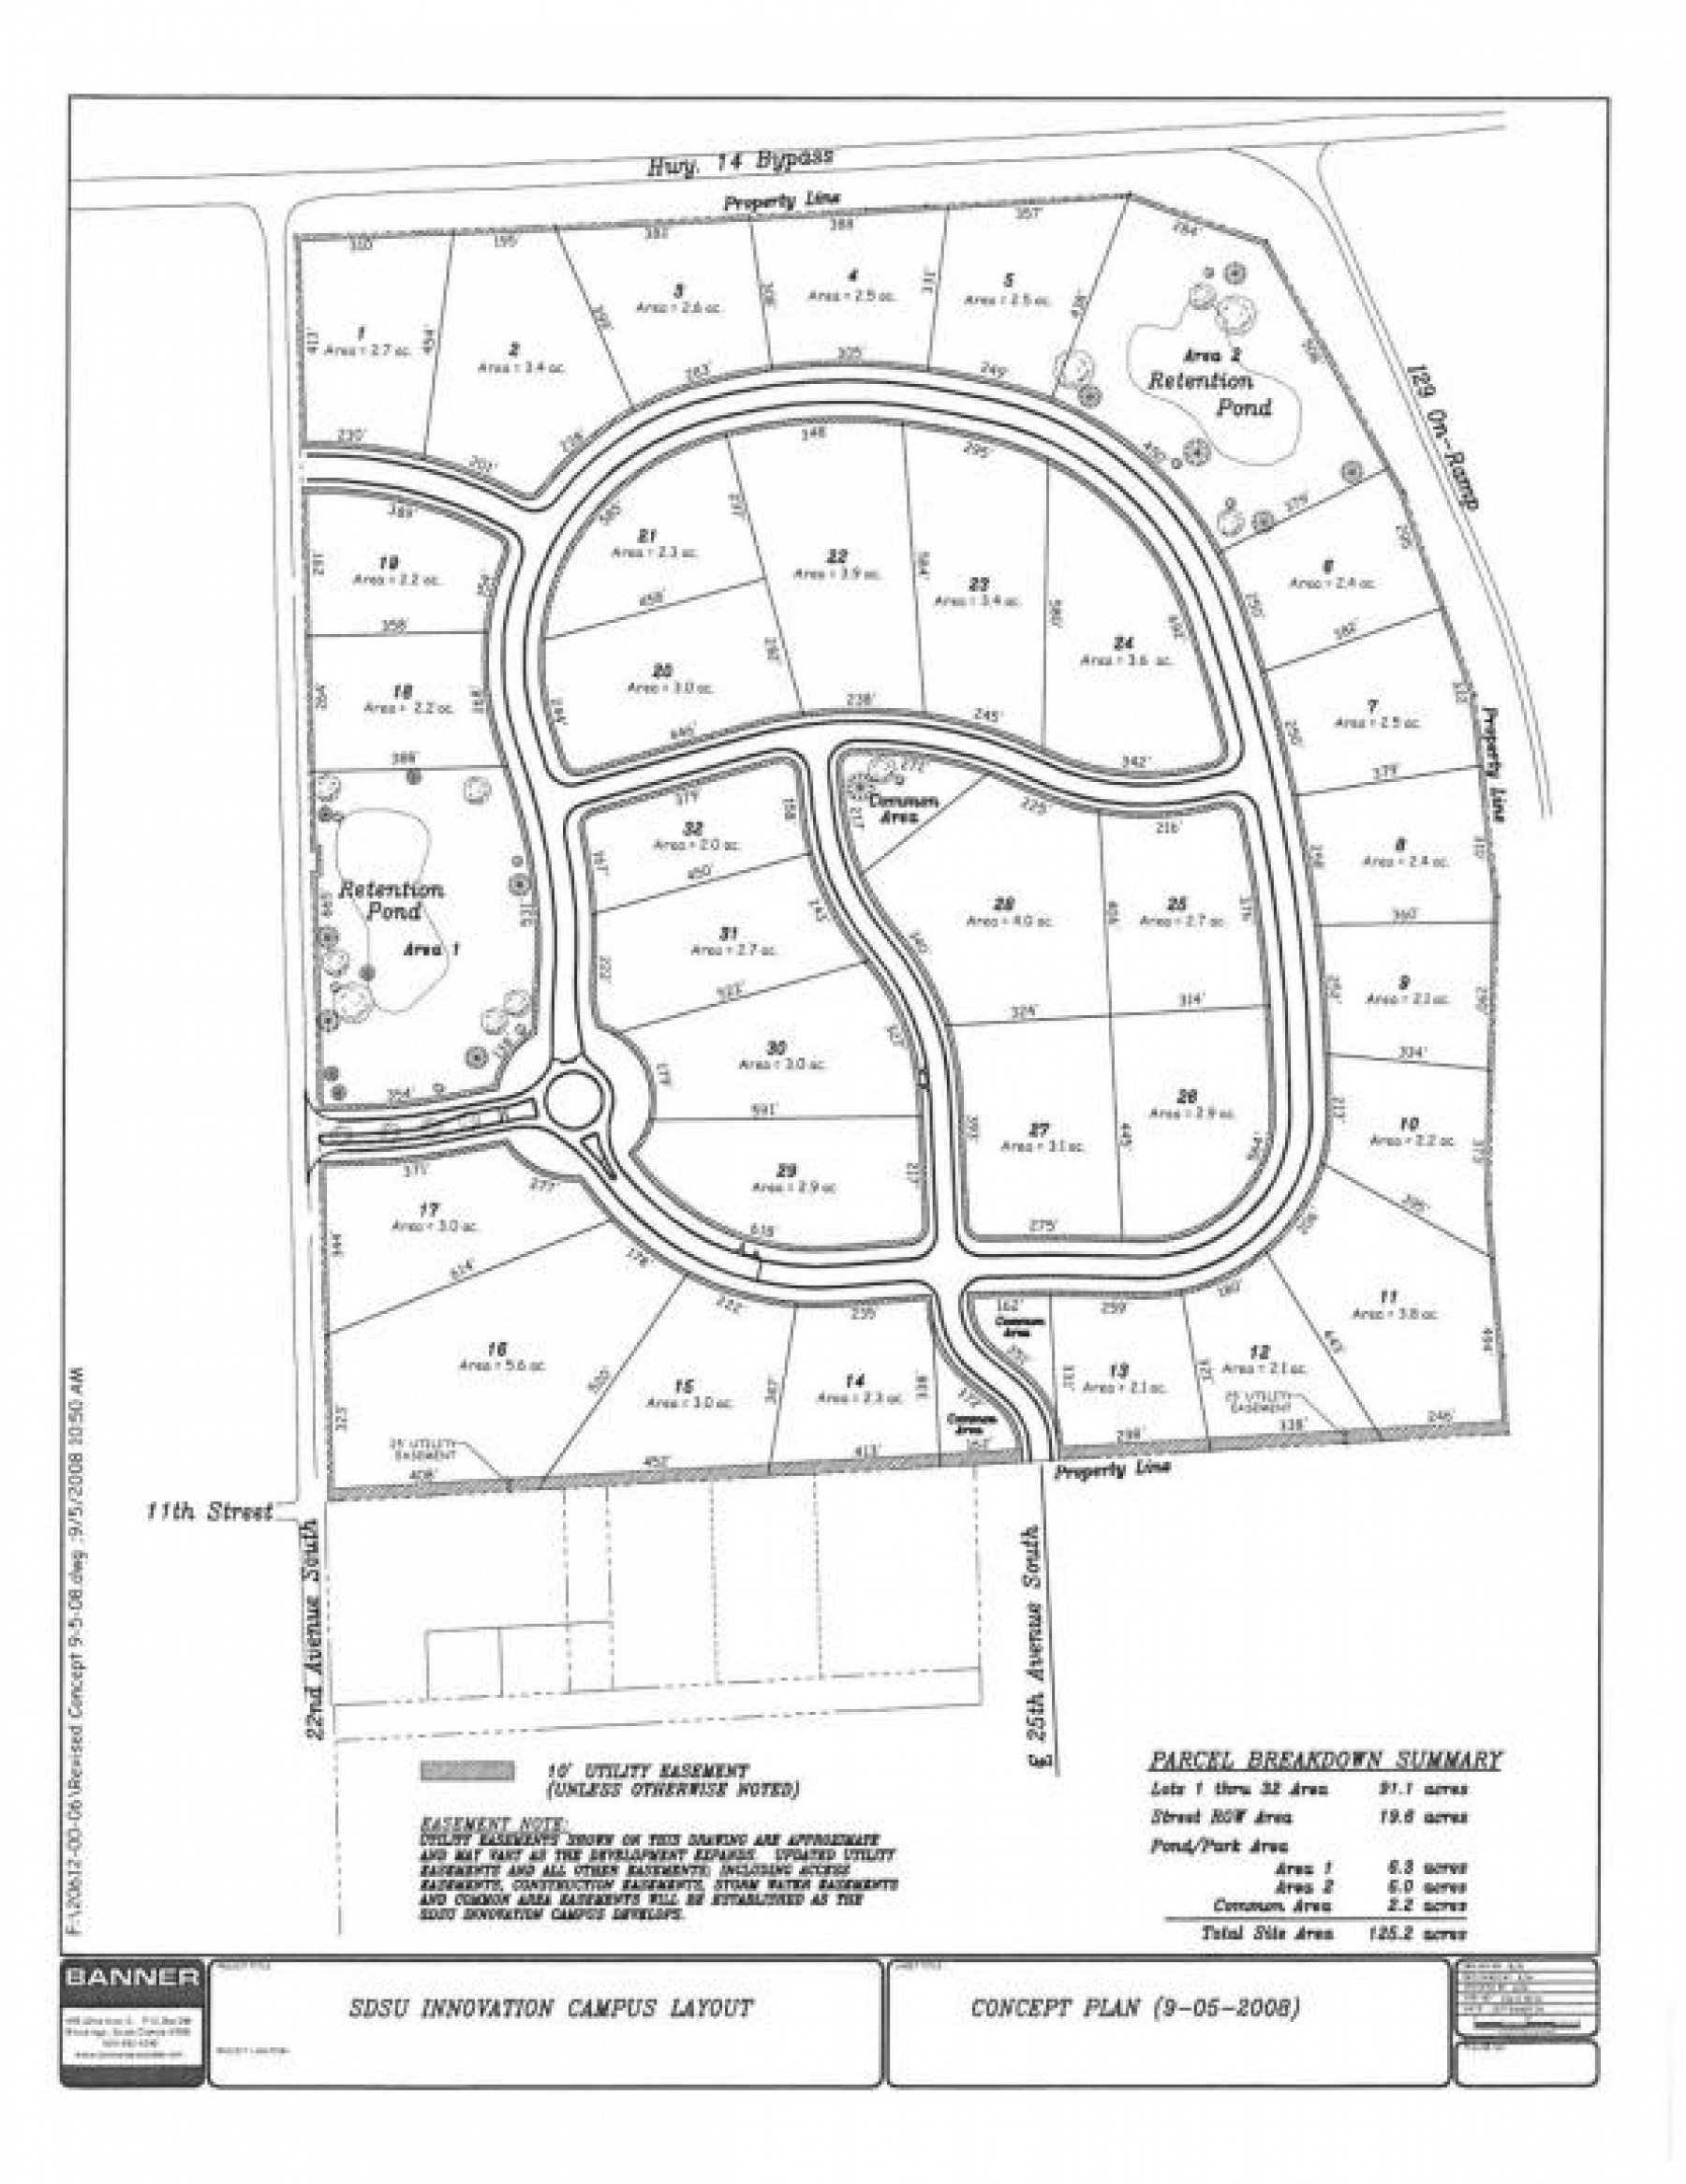 Lot 16 Innovation Campus, Brookings, SD 57006